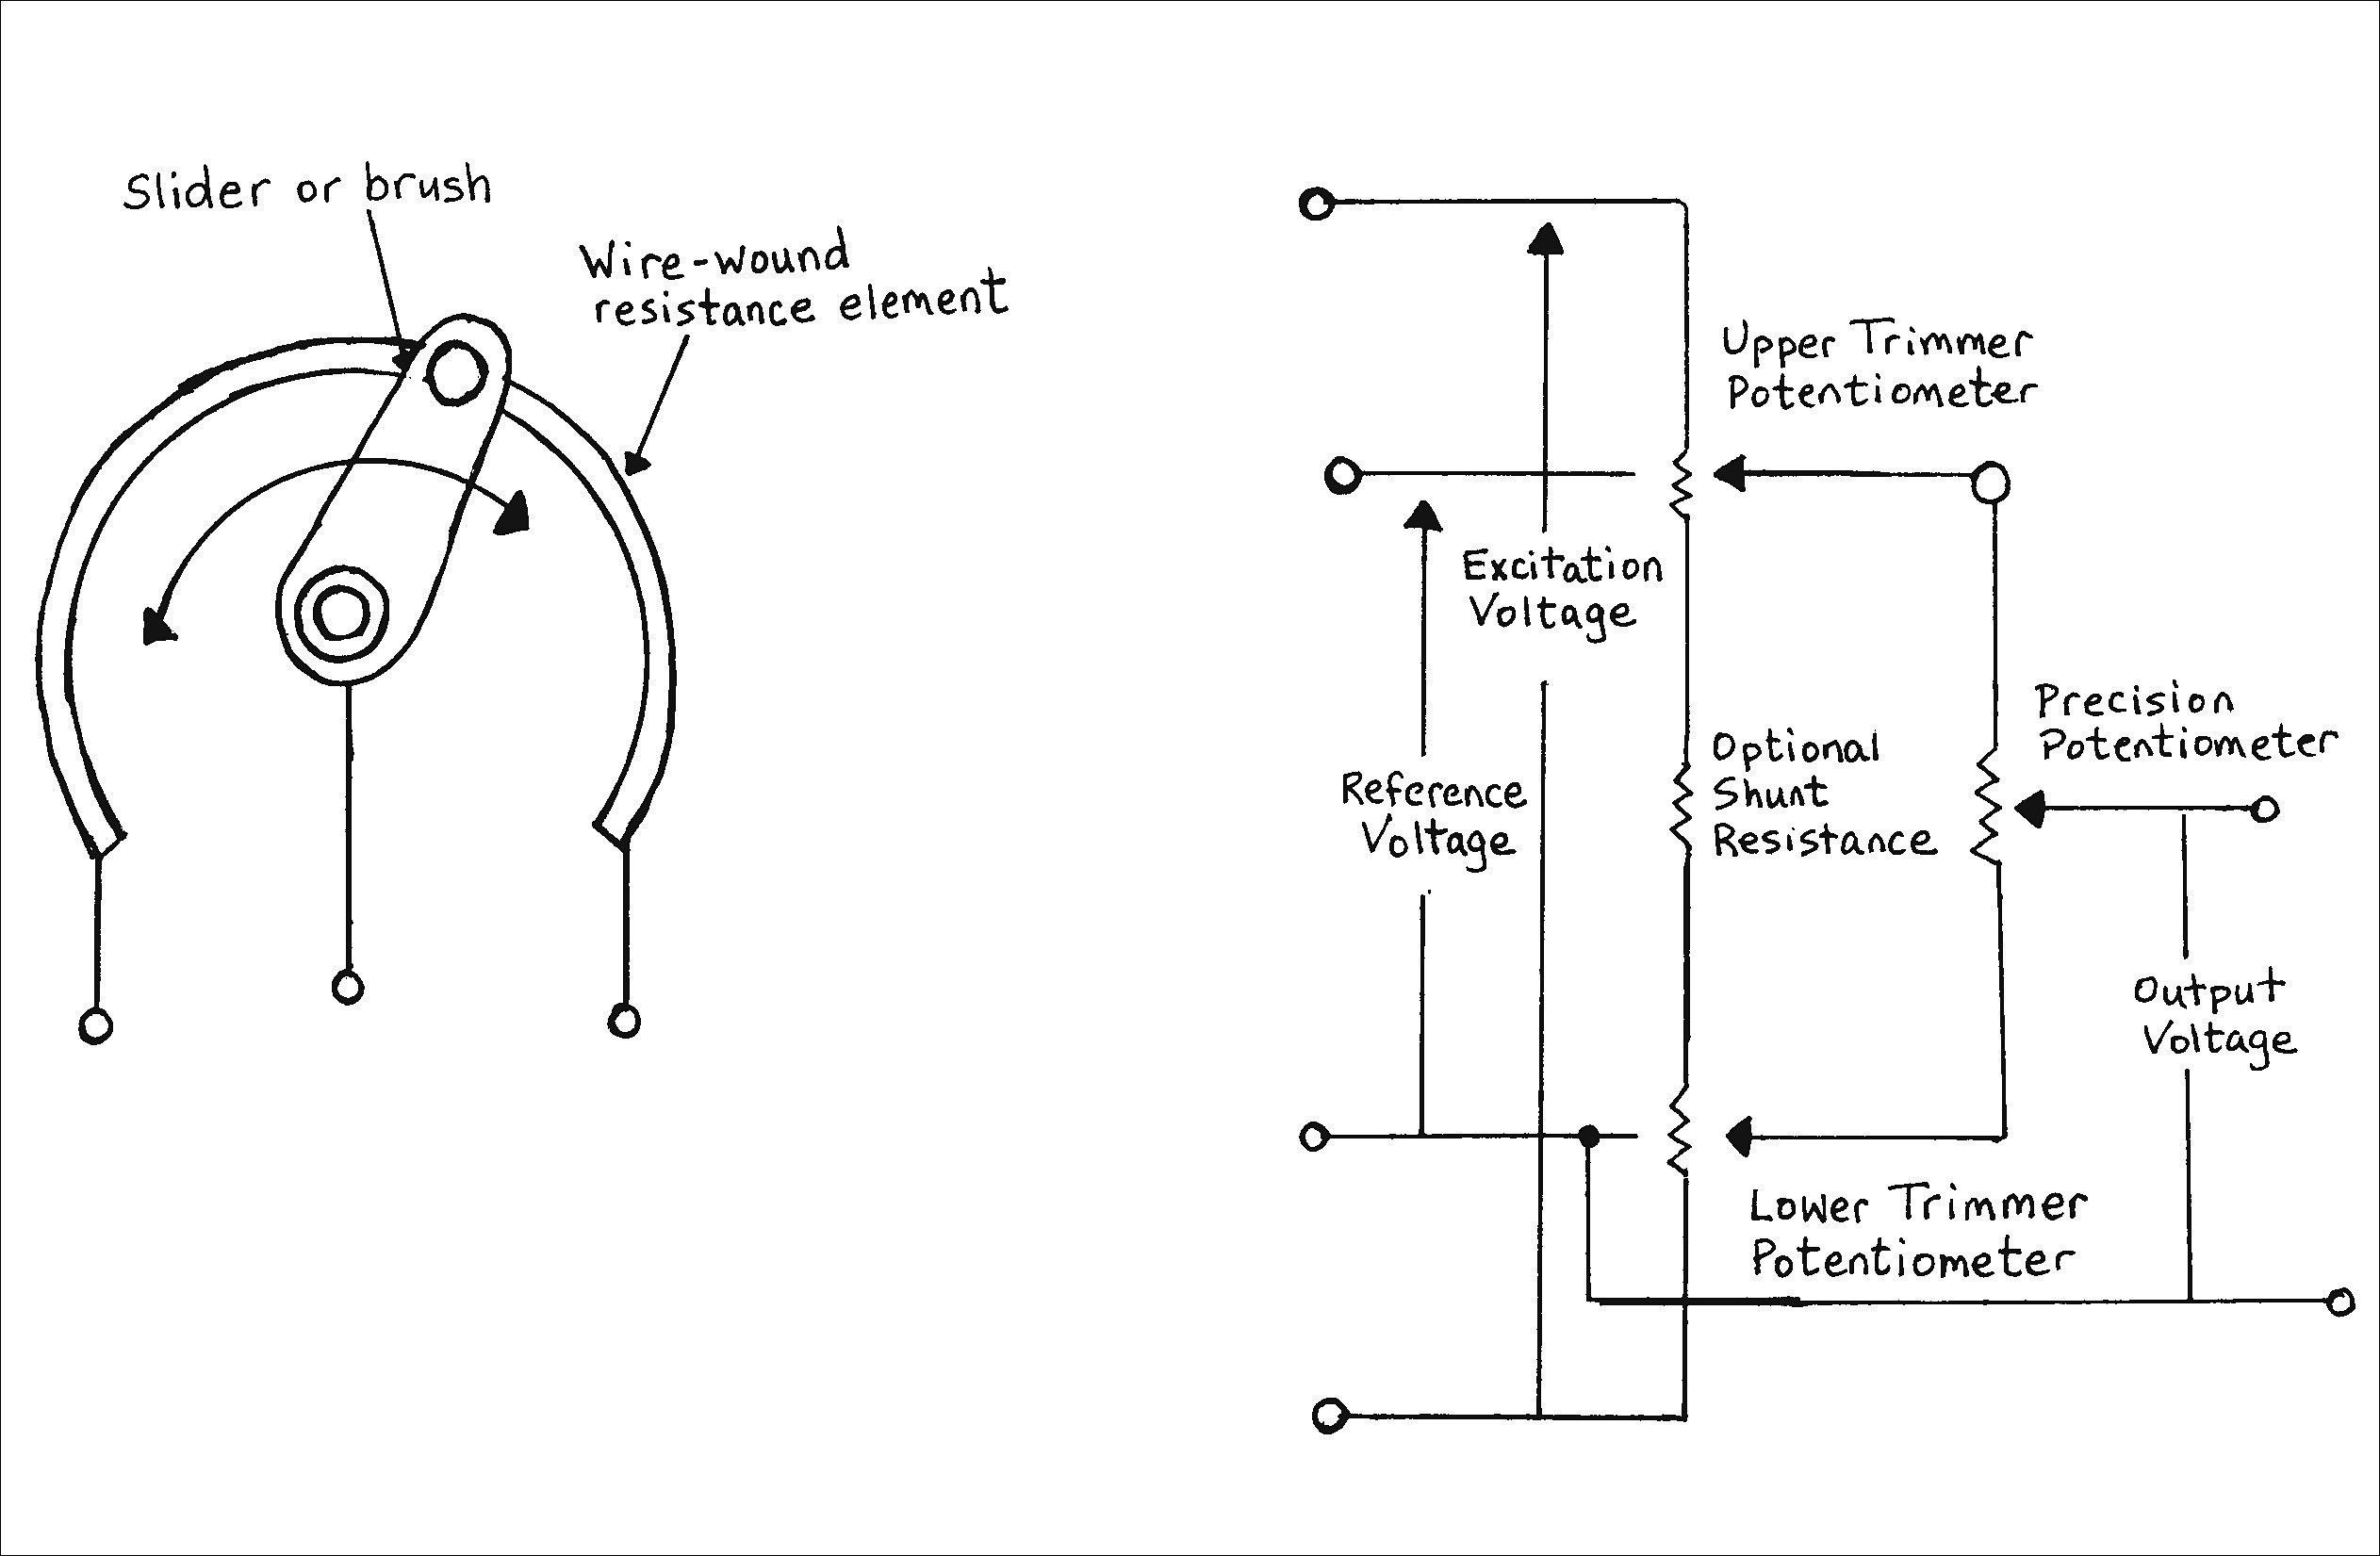 Potentiometer Wiring Diagram Awesome In 2020 Diagram Circuit Diagram Wire